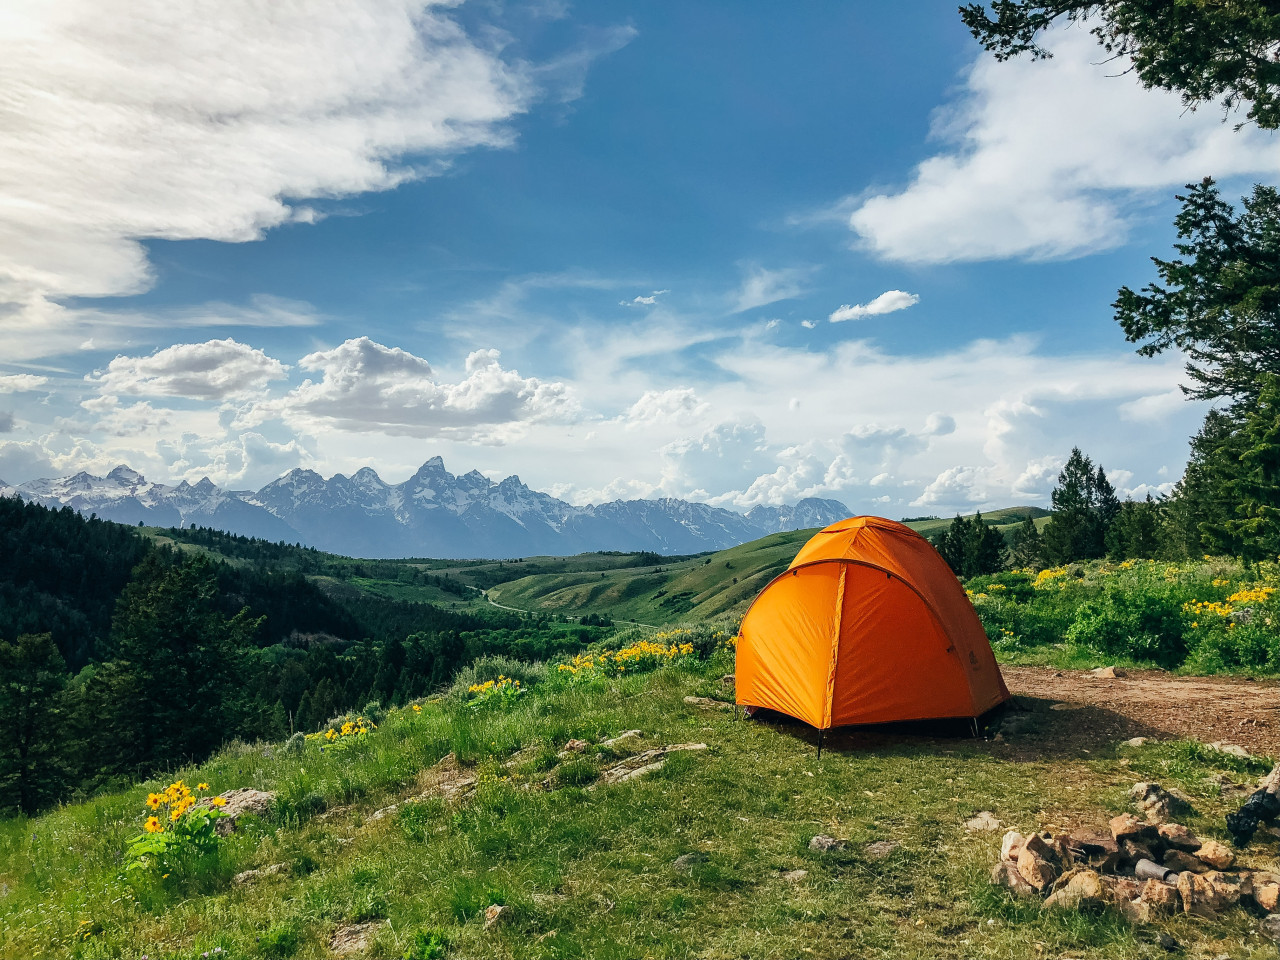 7 Vital Tips for Your First Solo Camping Adventure